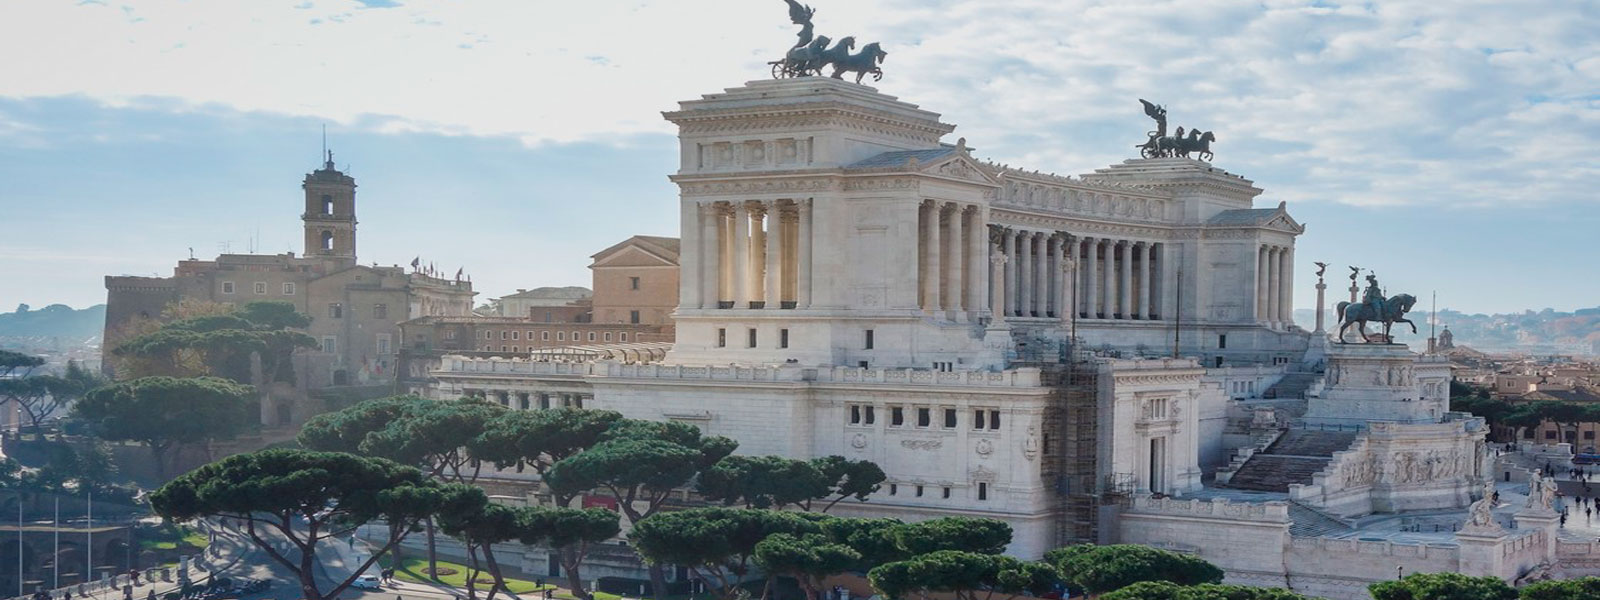 Sightseeing tour of Rome with an English guide